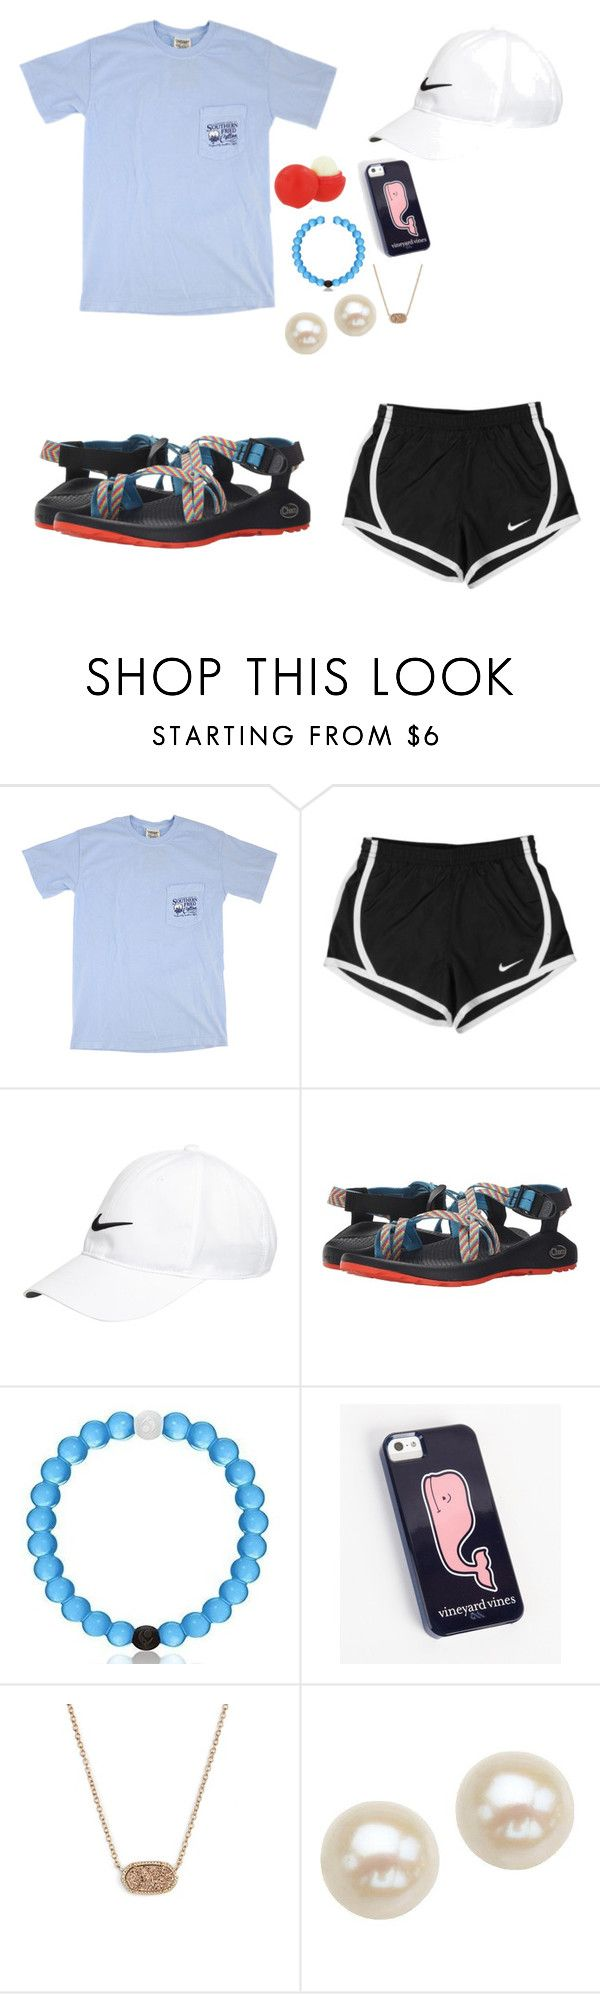 """""""Warm weather please come back so I can go golfing bc I haven't  done it in a while k? Thanks"""" by jen-joanna ❤ liked on Polyvore featuring NIKE, Chaco, Everest, Vineyard Vines, Eos, Kendra Scott and Honora"""